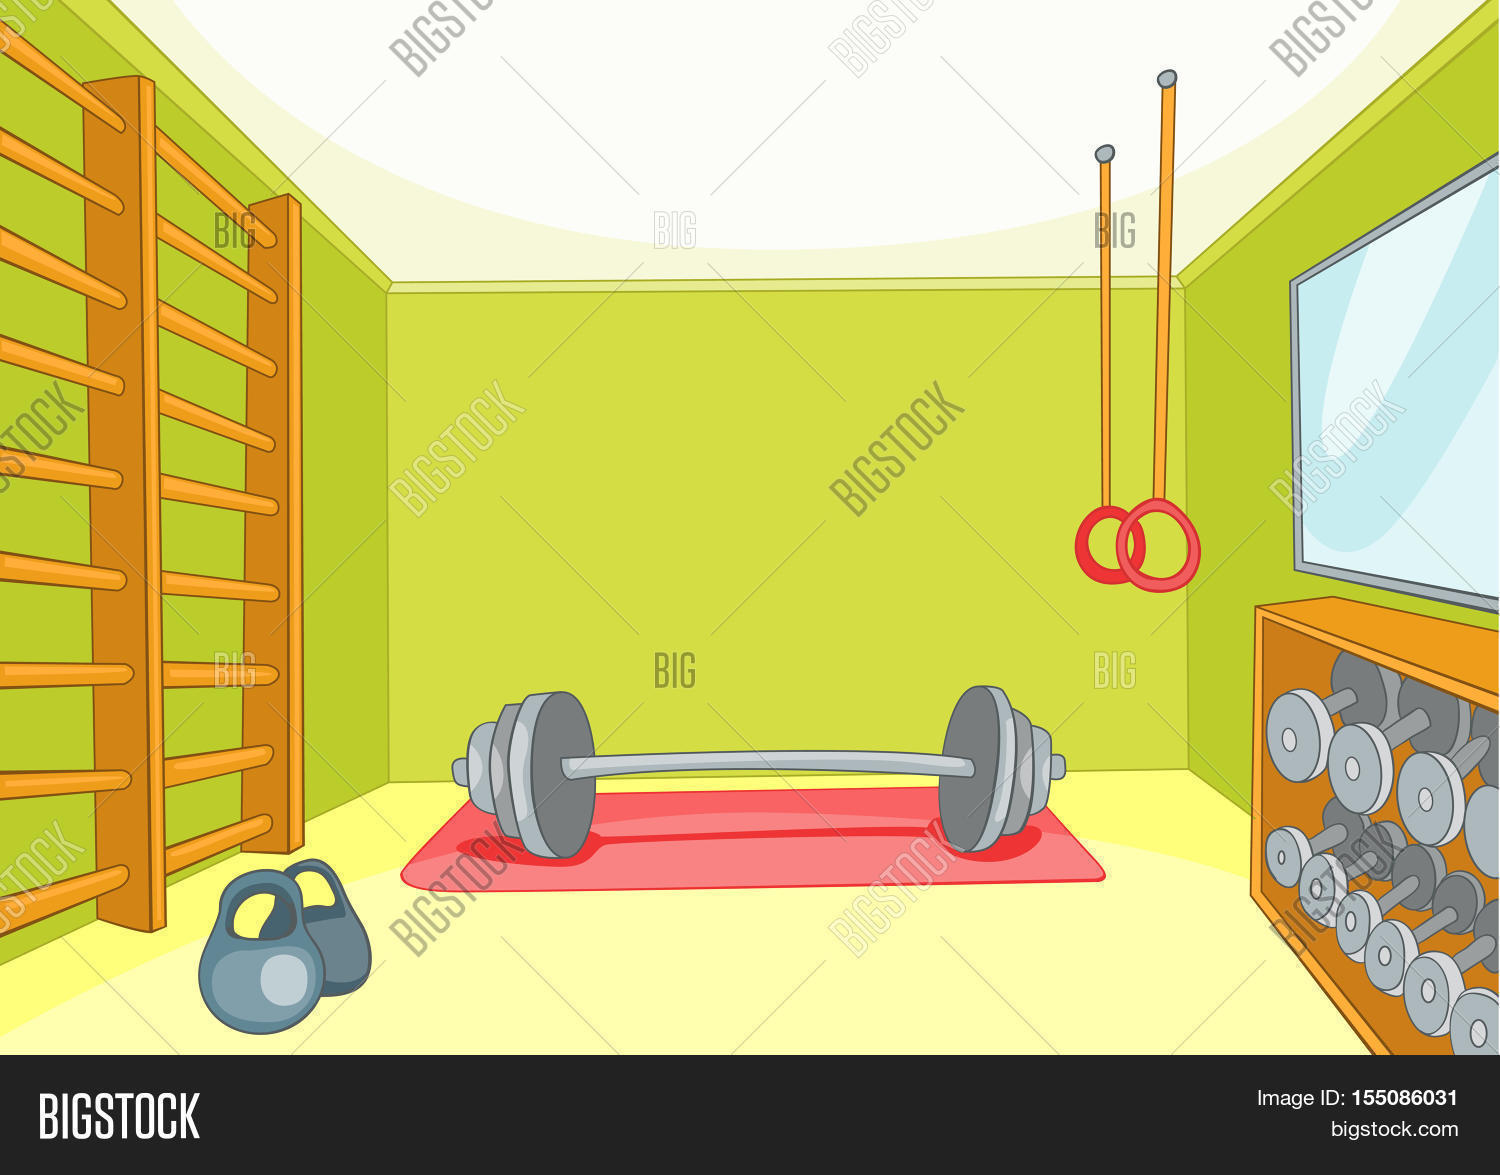 Hand drawn cartoon gym room image photo bigstock